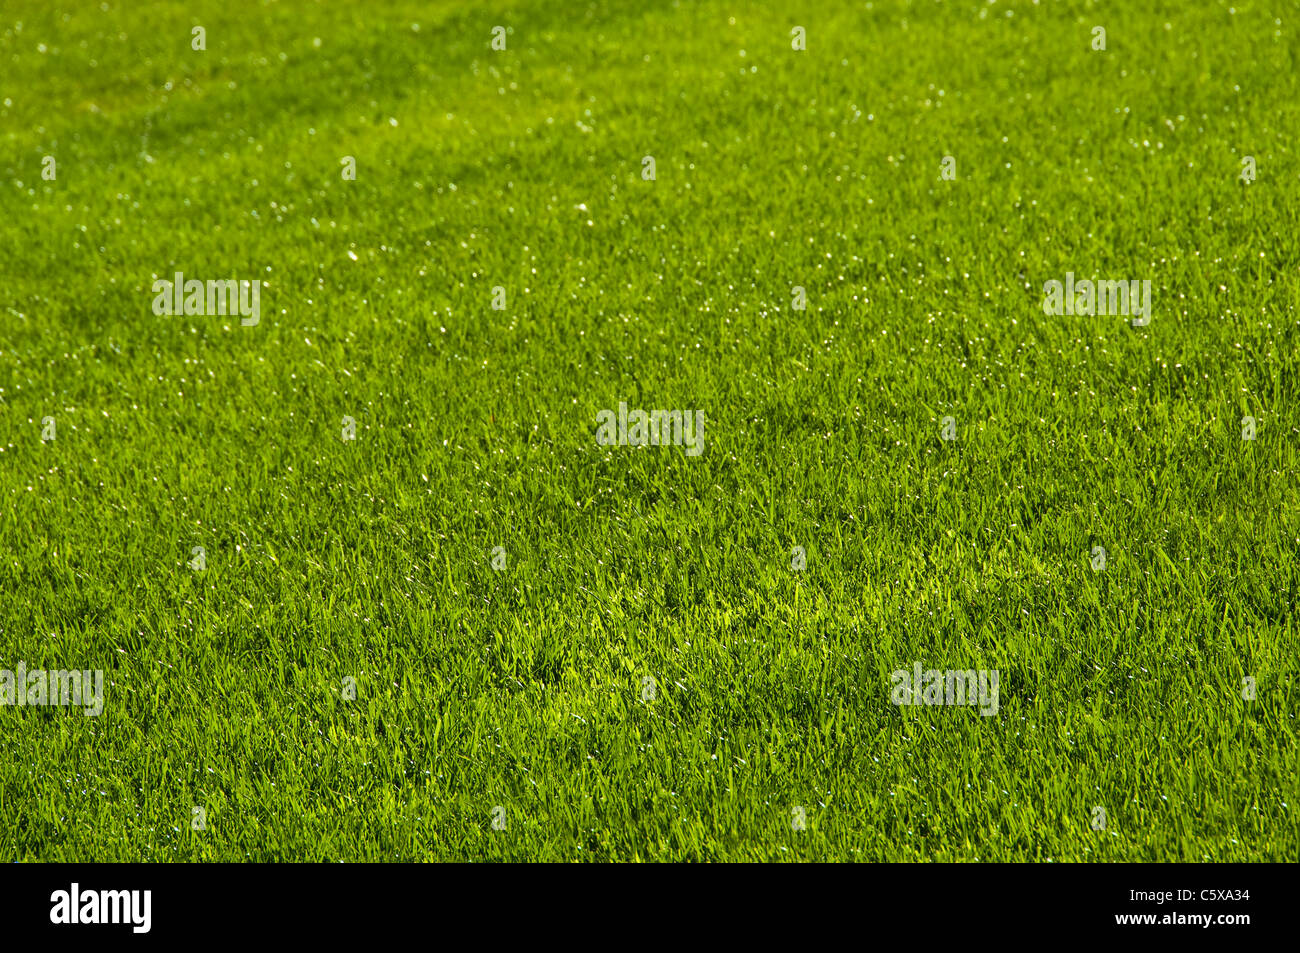 Lawn in spring - Stock Image